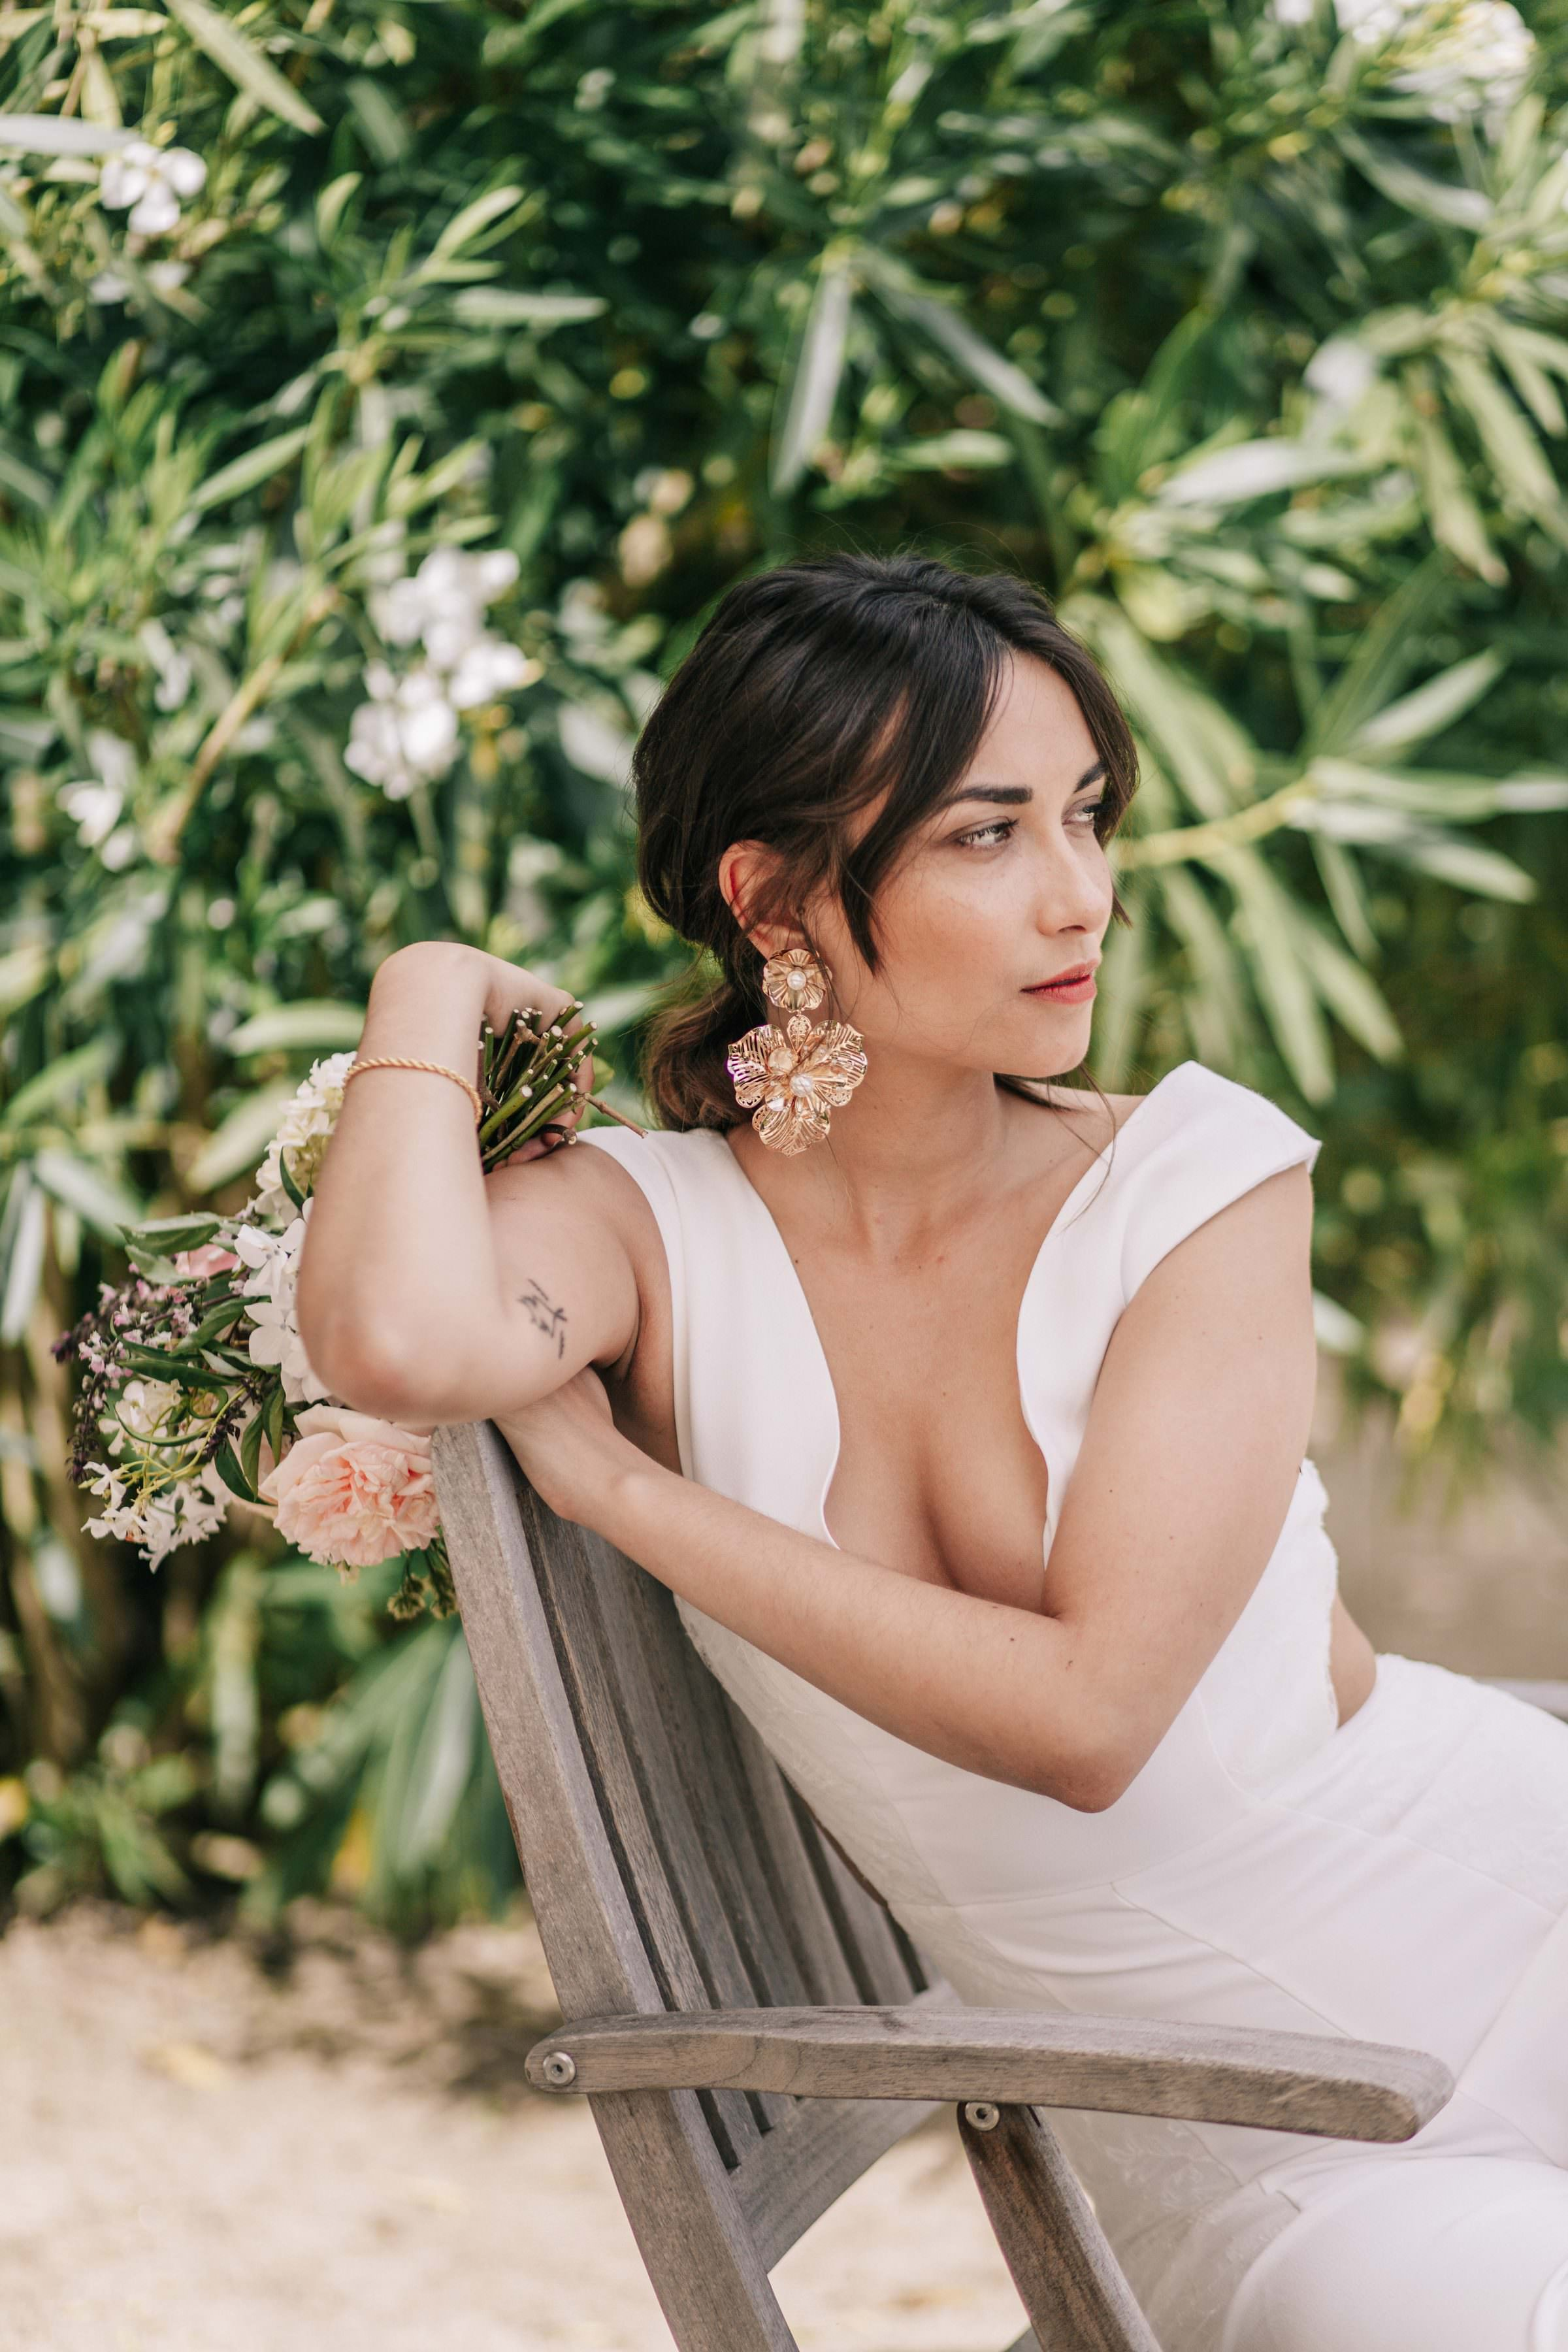 Revealing seated bridal portrait - photo by Amandine Ropars